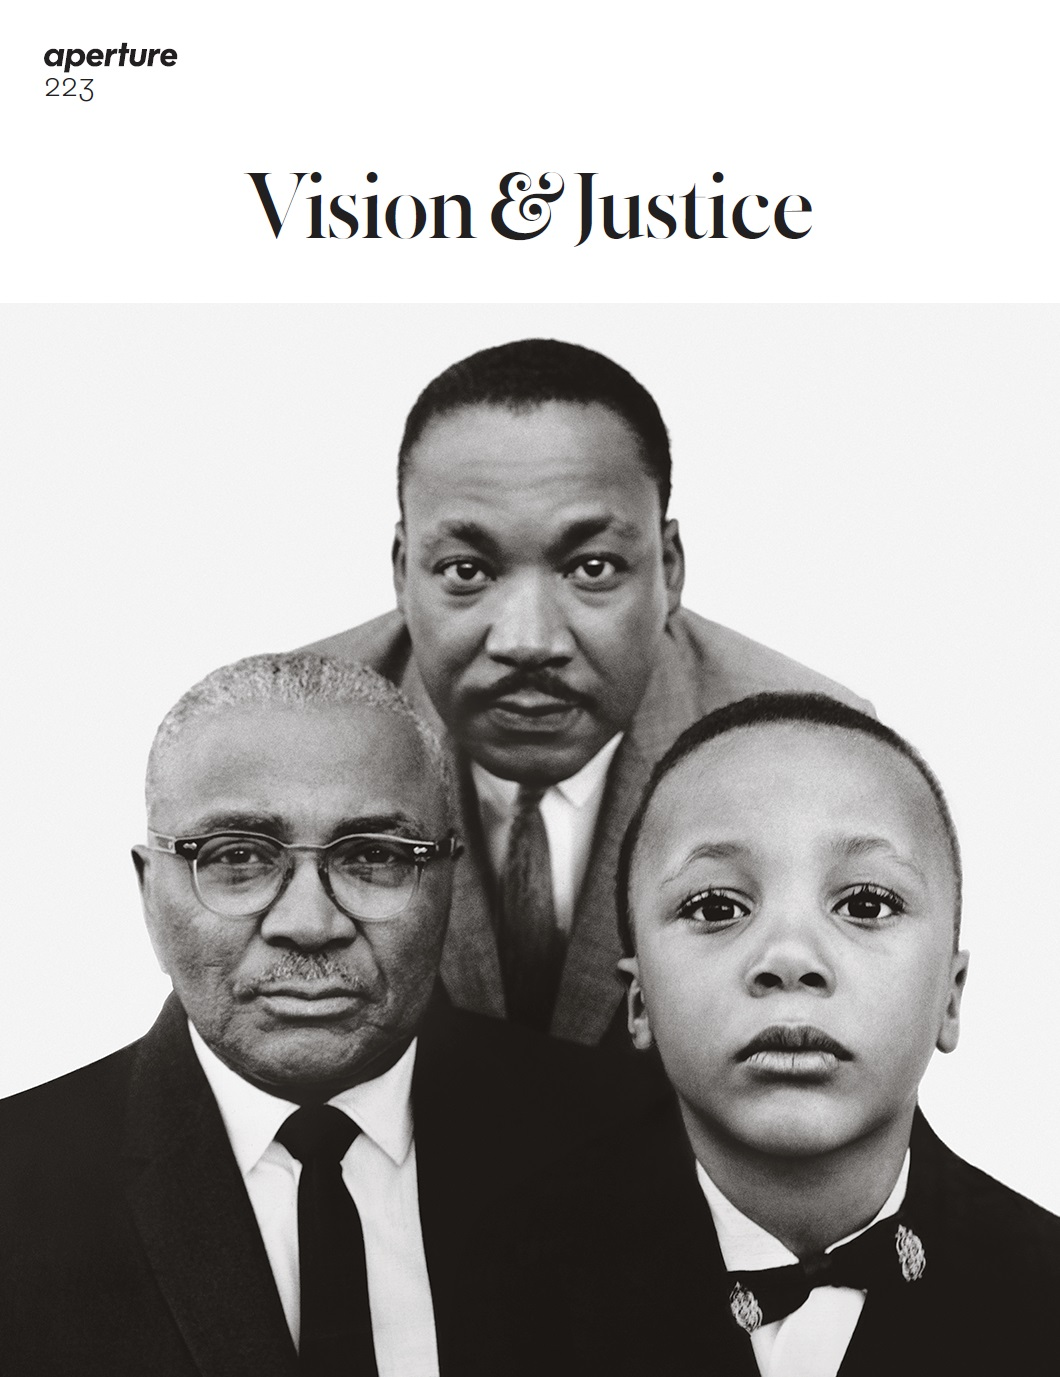 Cover of Aperture #223, Summer 2016, Vision & Justice. Photograph by Richard Avedon.